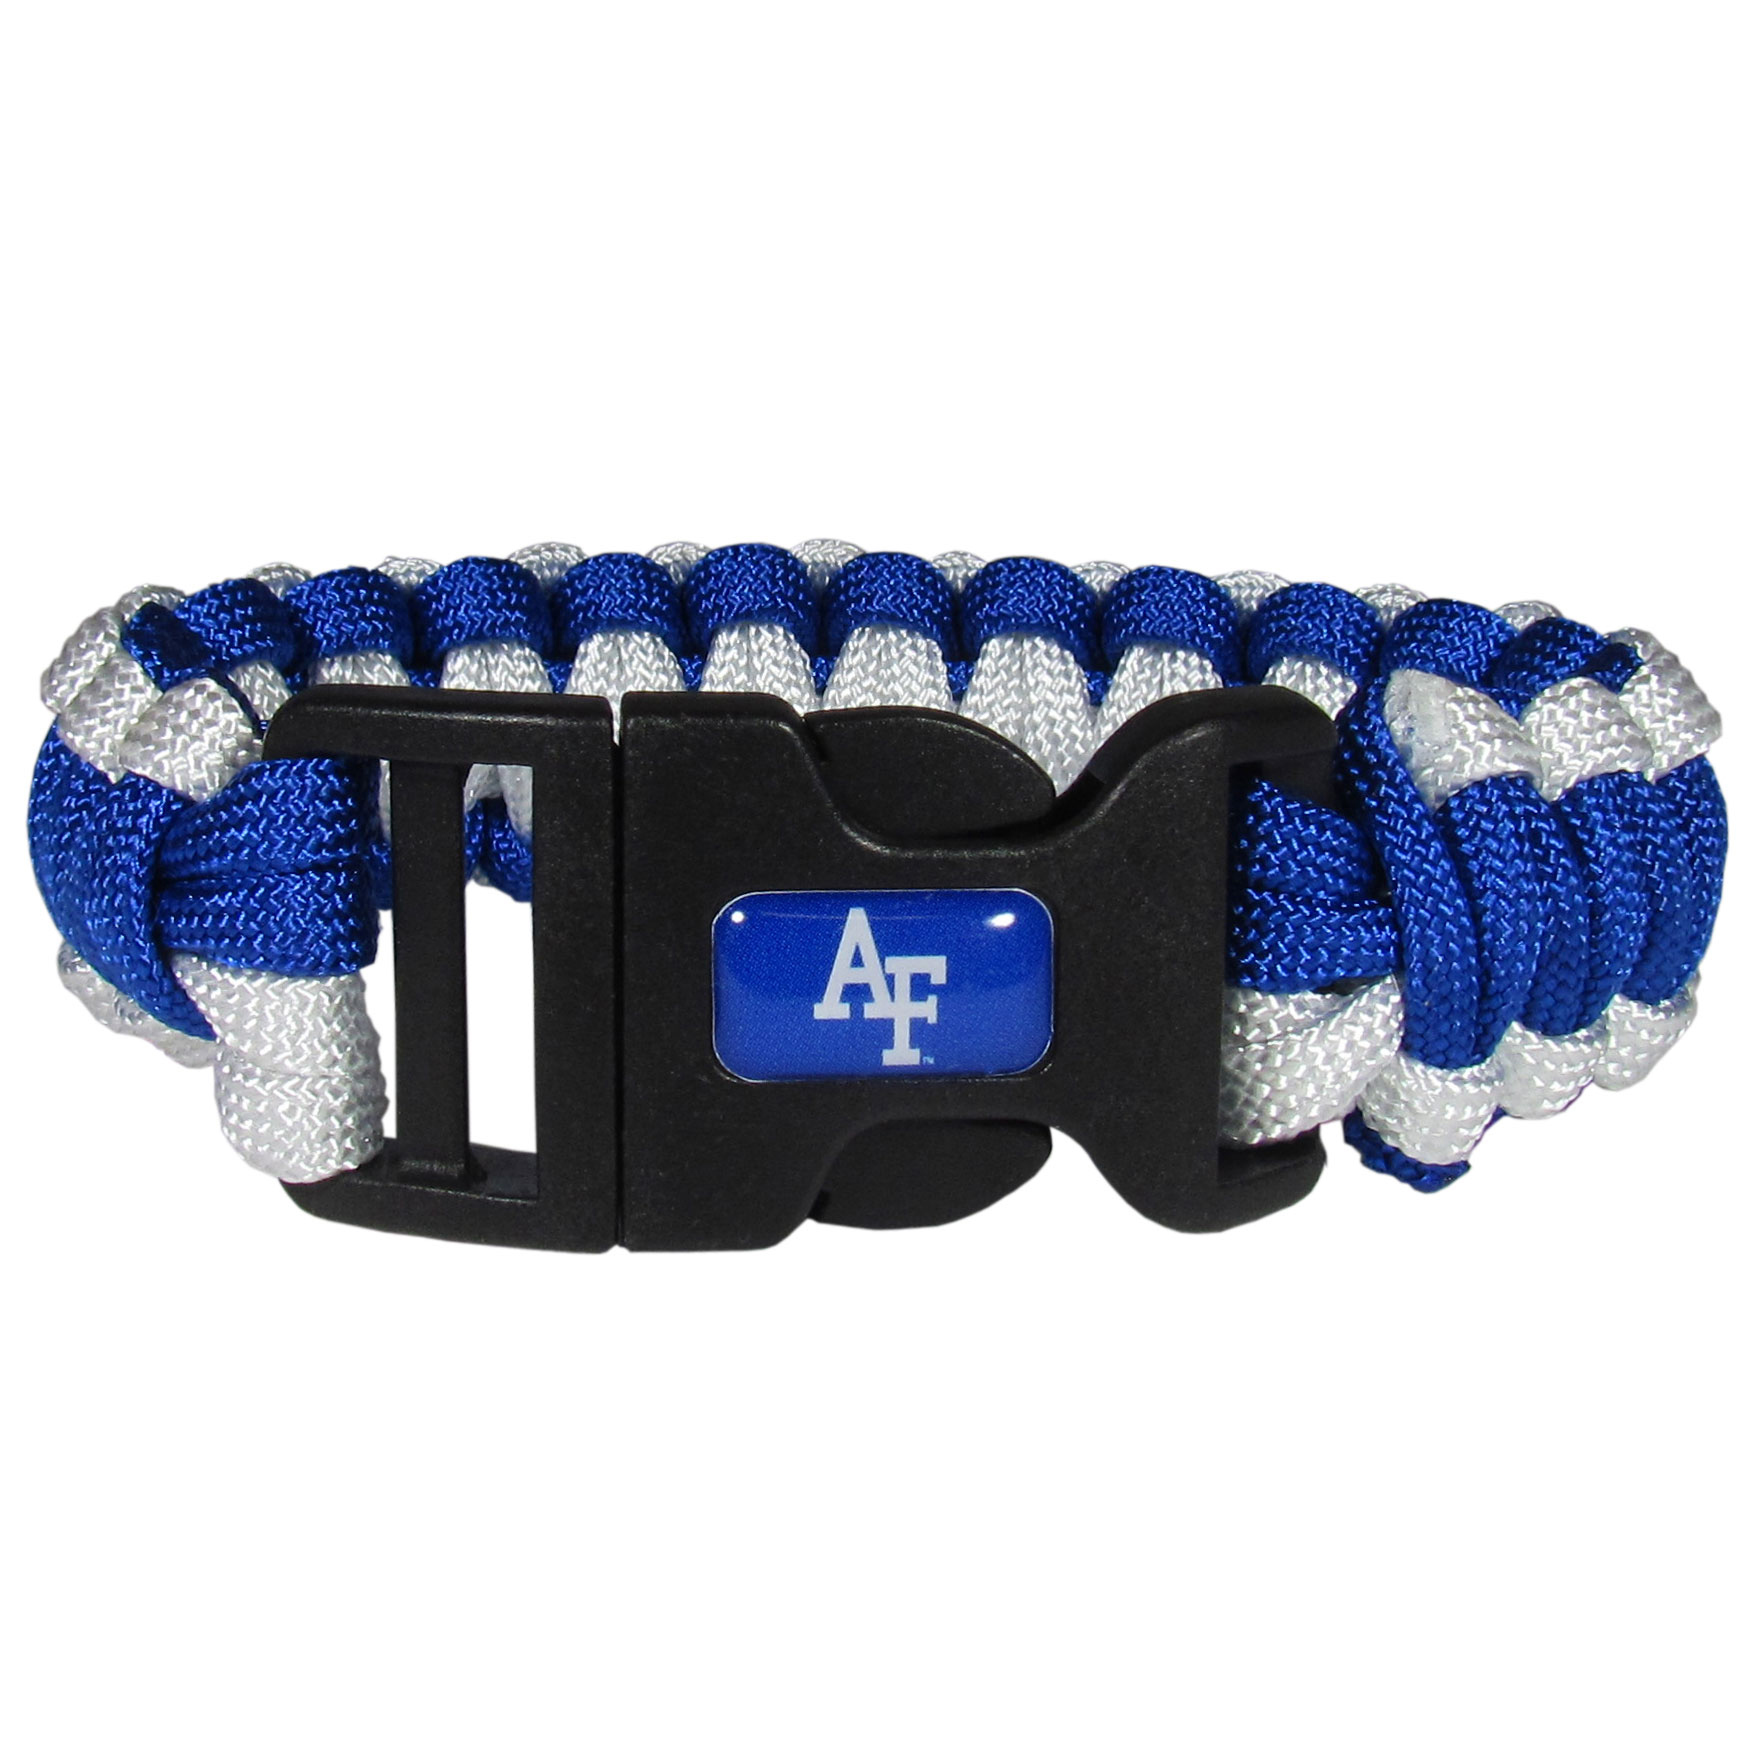 US Air Force Academy Survivor Bracelet - Our functional and fashionable US Air Force Academy survivor bracelets contain 2 individual 300lb test paracord rated cords that are each 5 feet long. The team colored cords can be pulled apart to be used in any number of emergencies and look great while worn. The bracelet features a team emblem on the clasp.